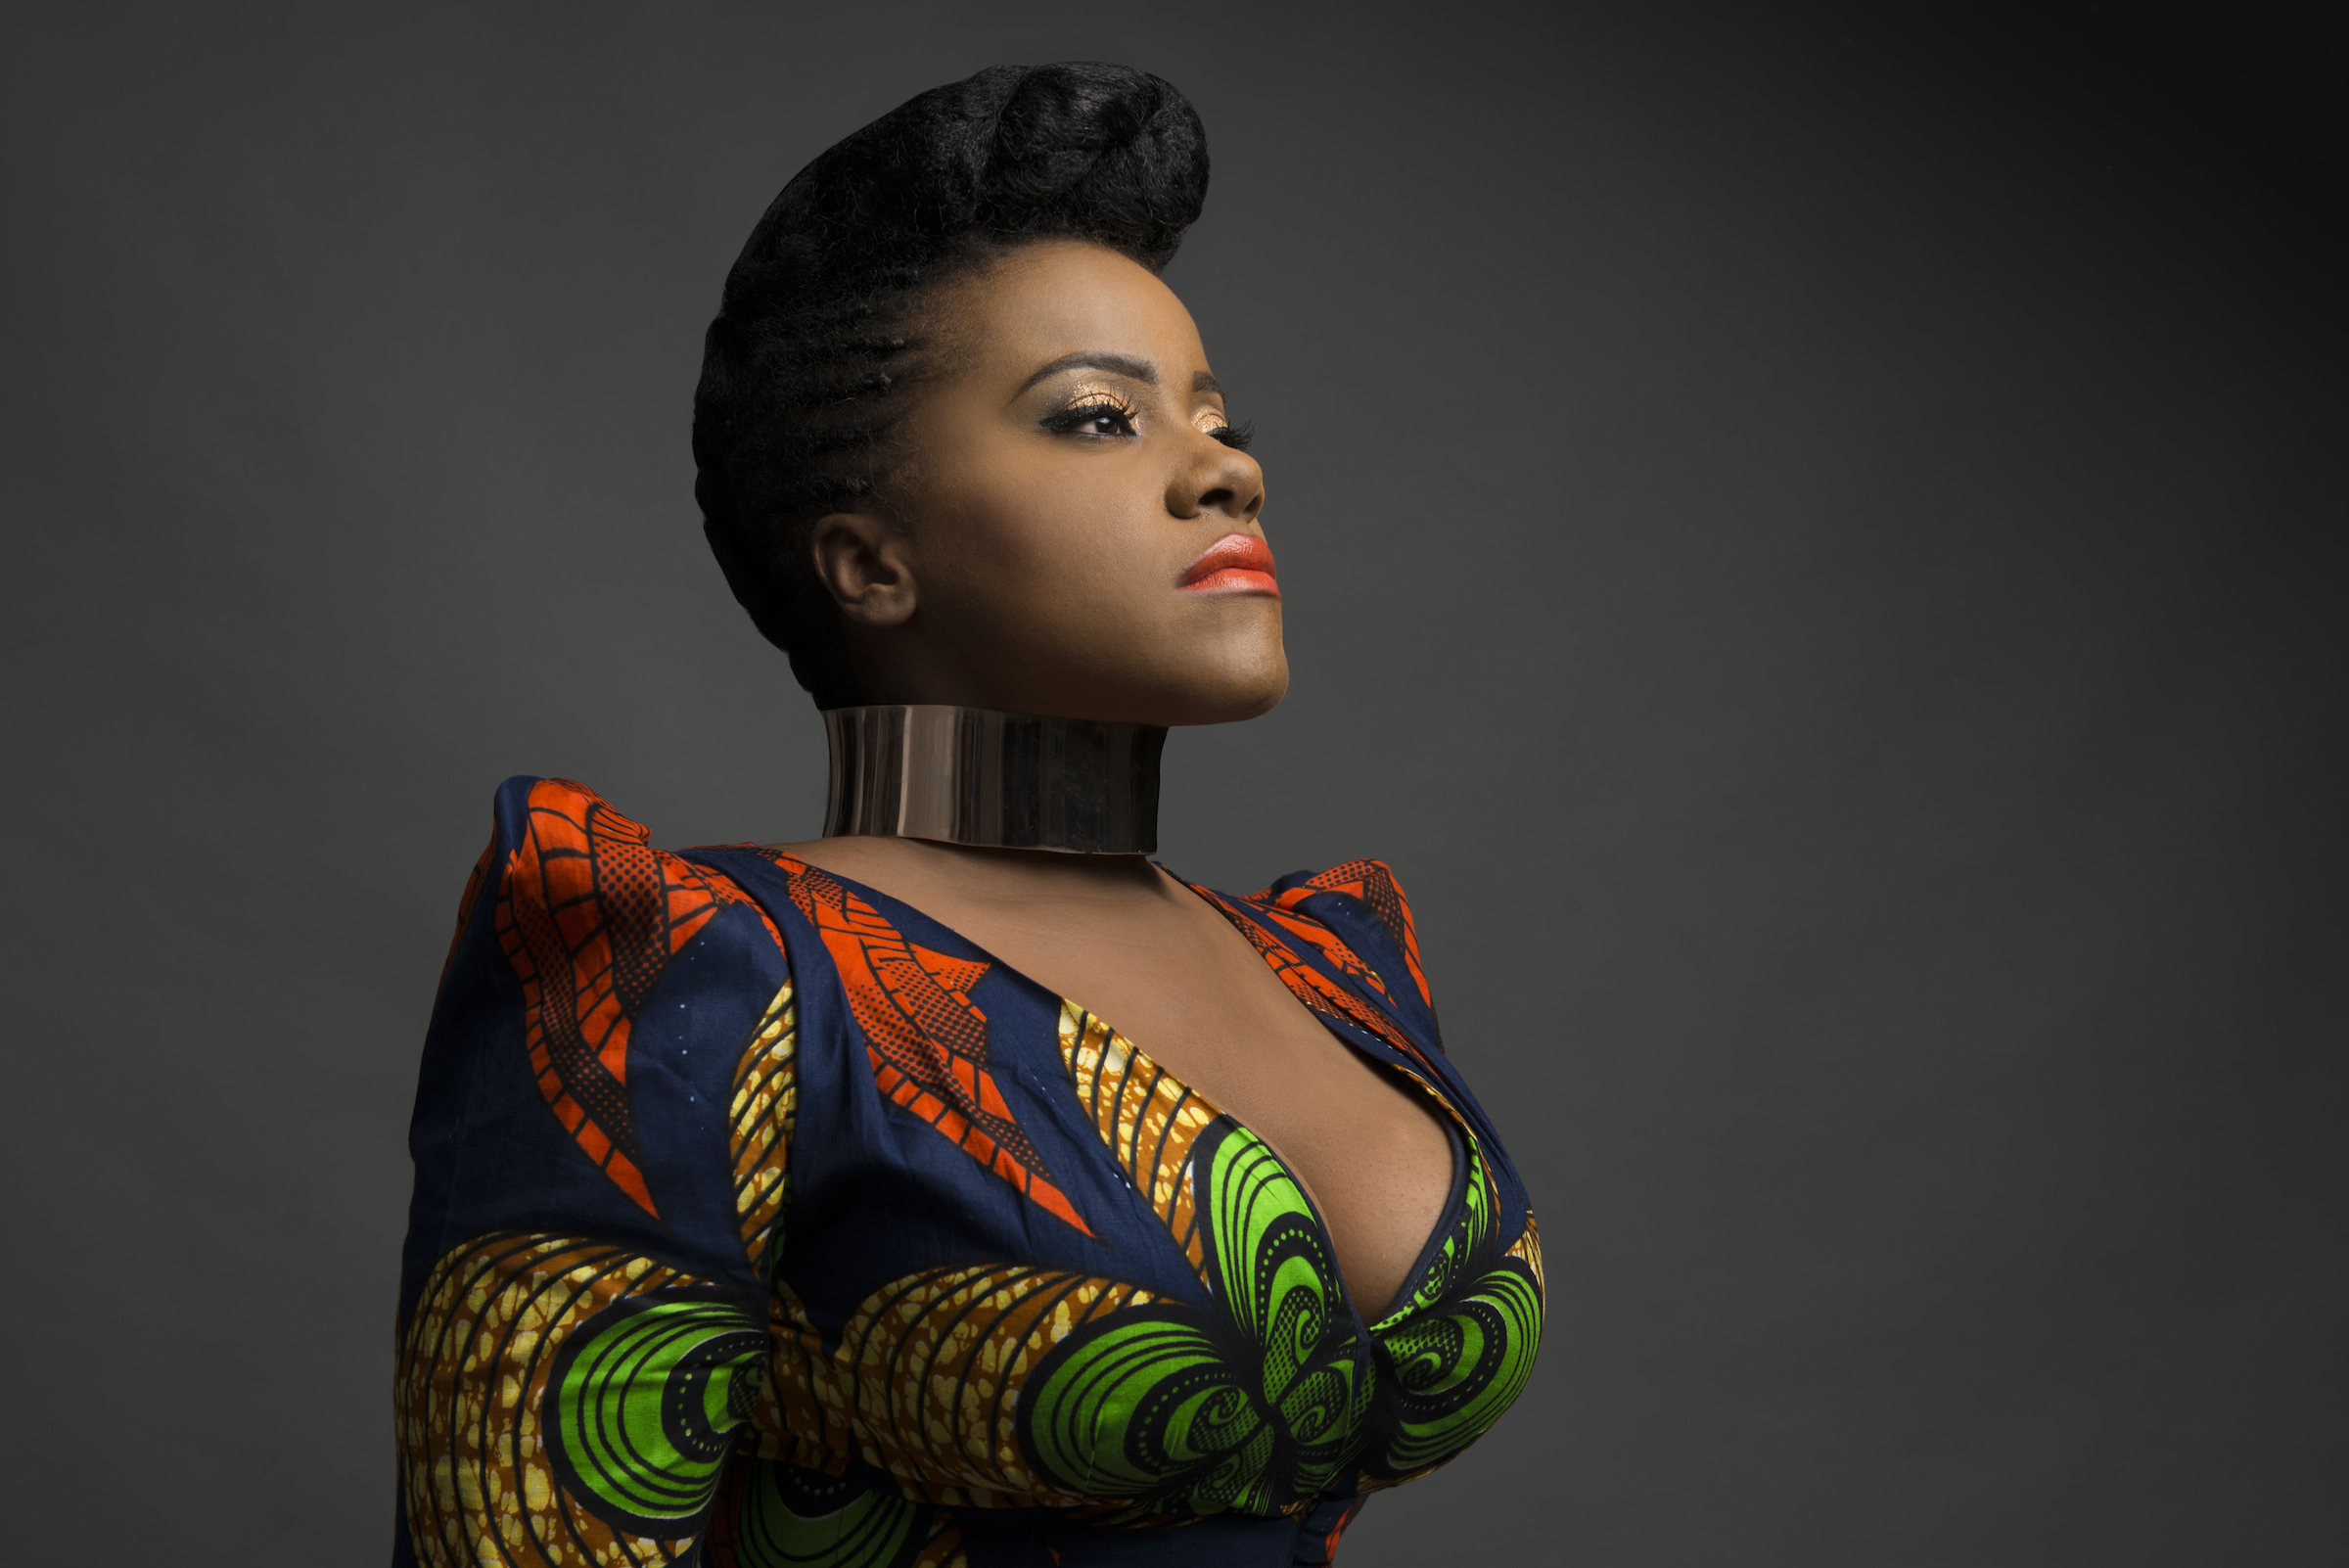 Etana releases 'How Long' music video